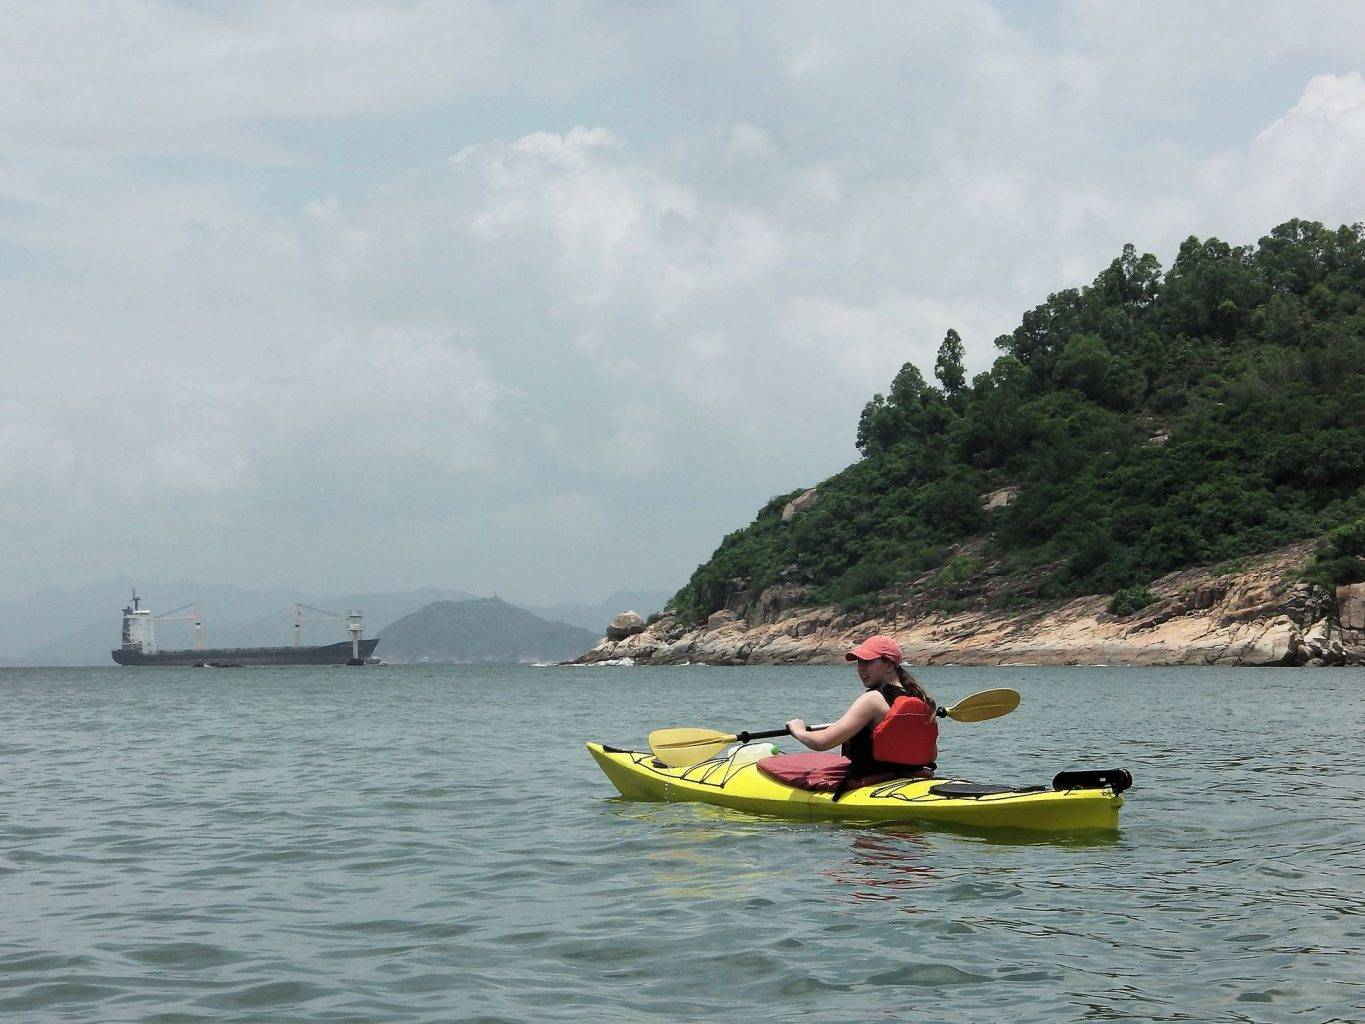 Sea Kayak Hong Kong 2018 Jul 22 Lamma_16